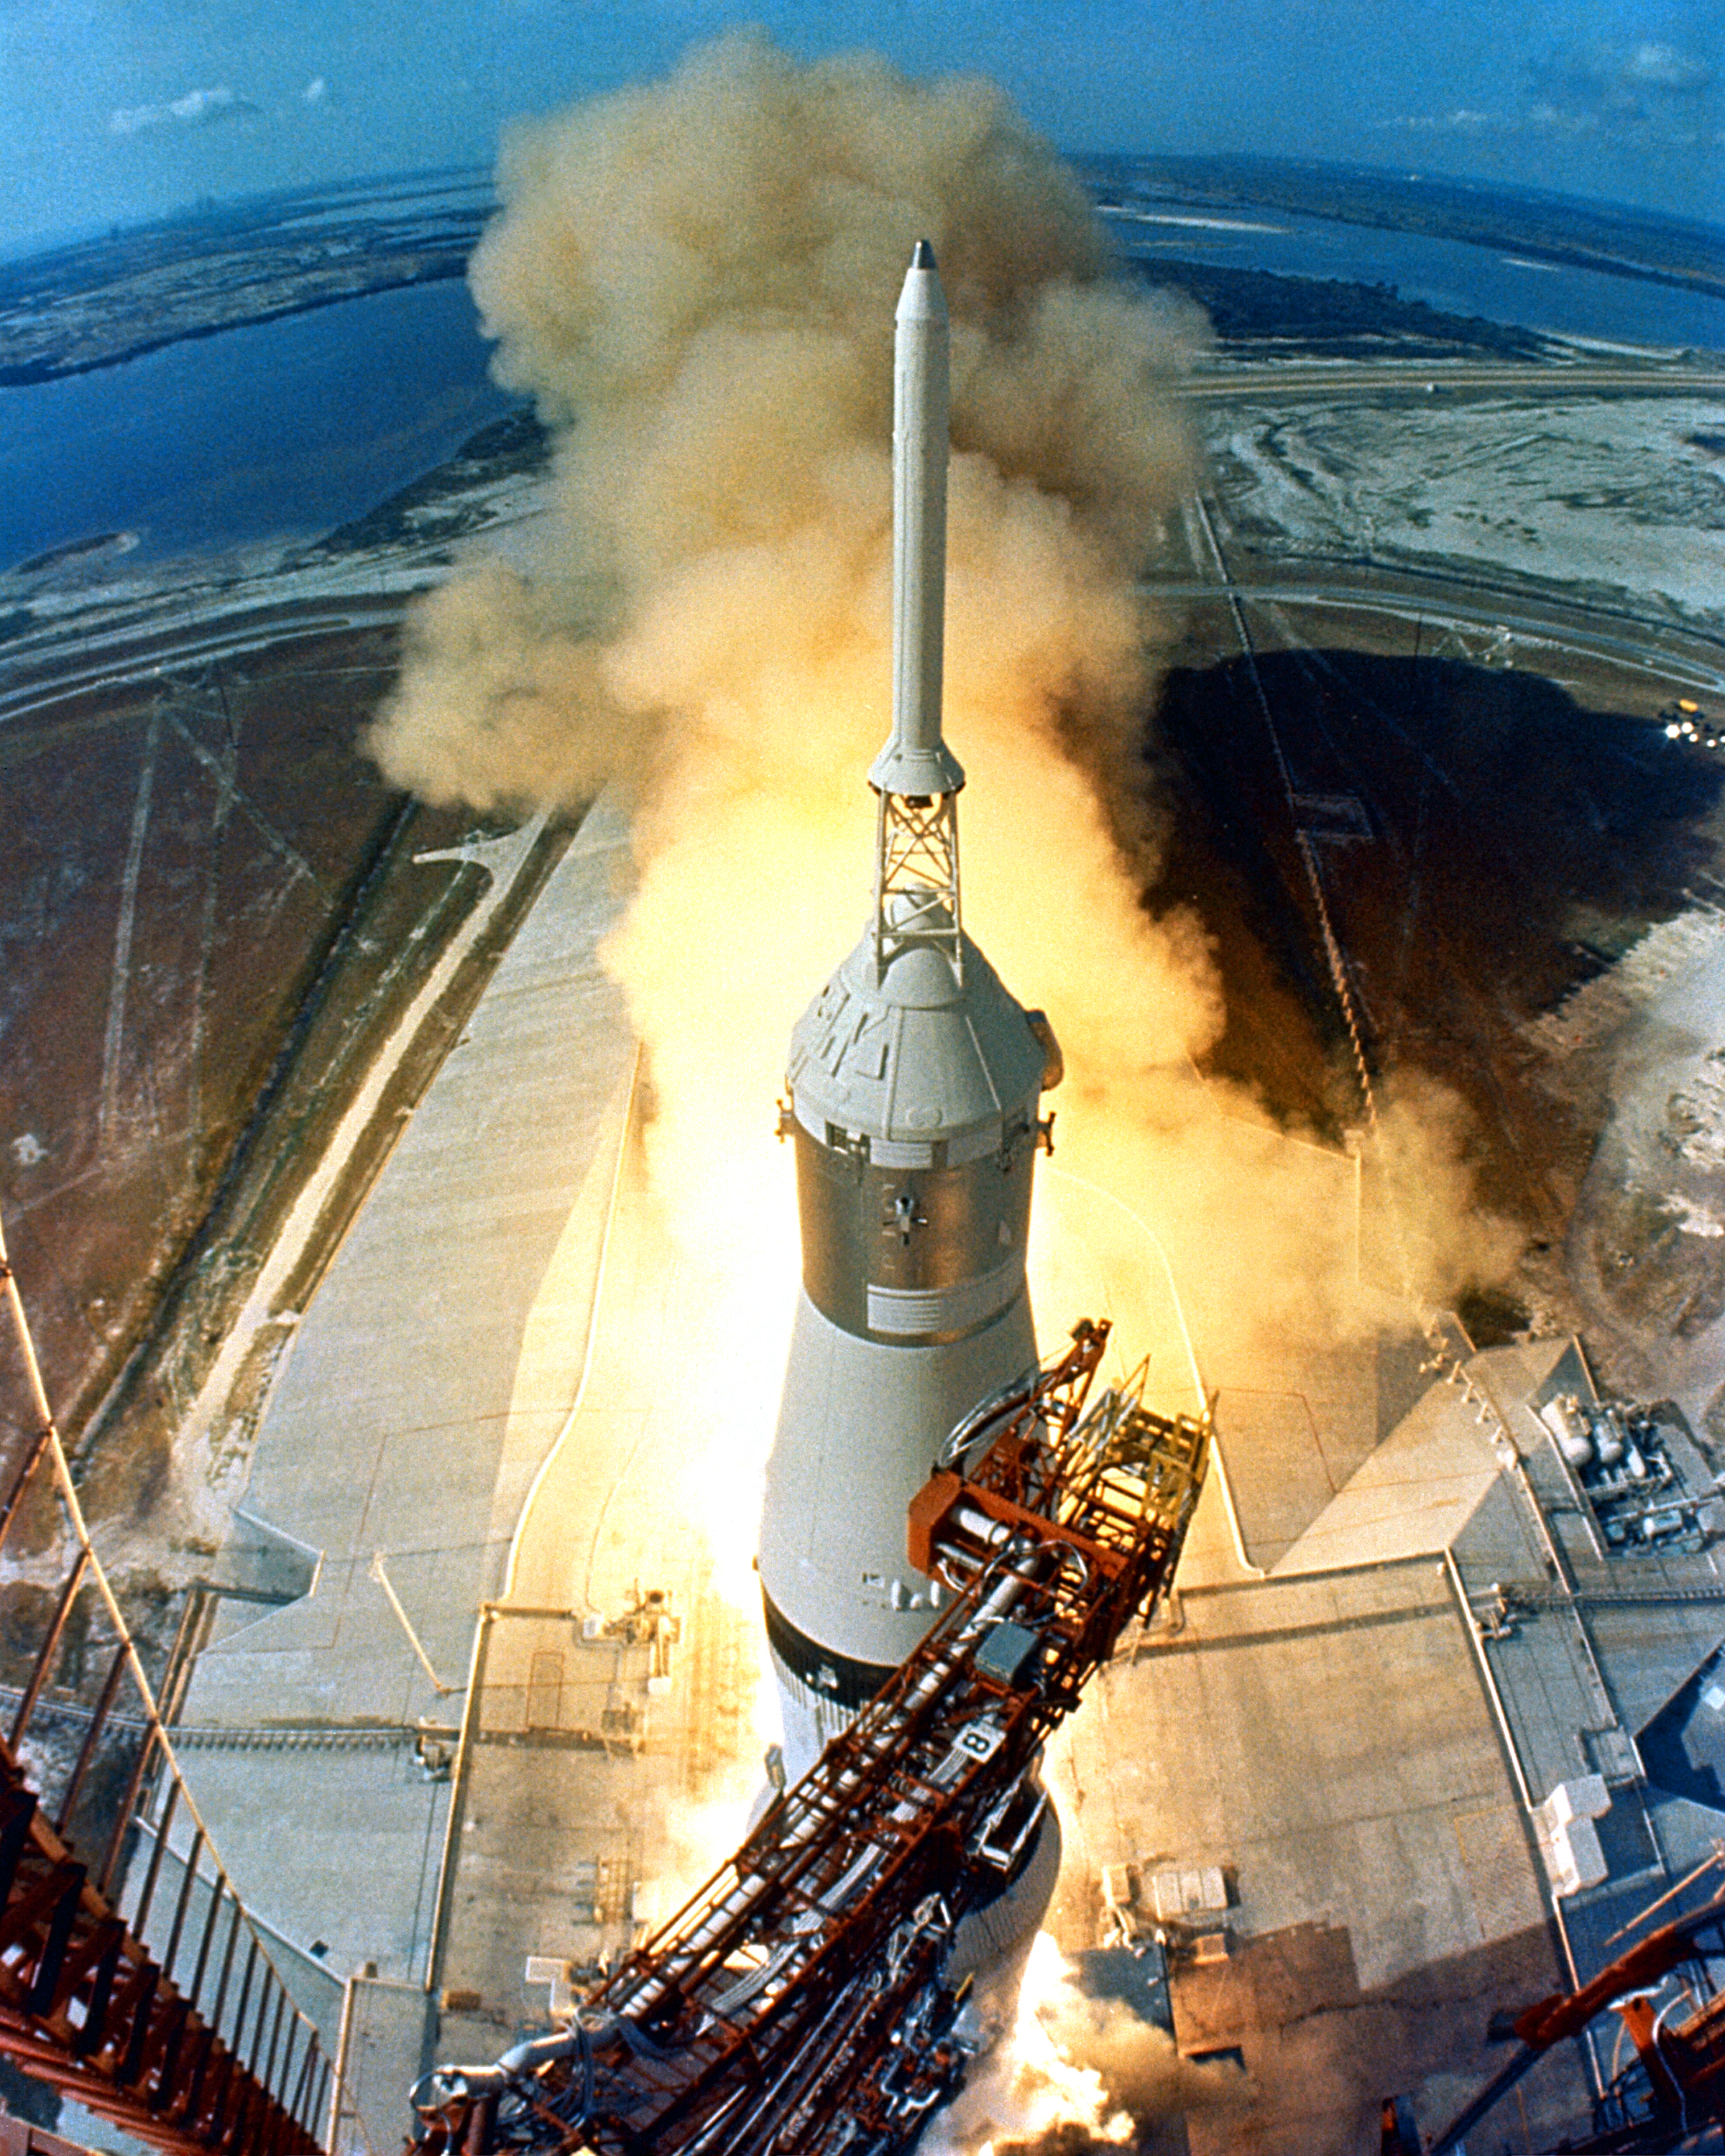 https://i1.wp.com/upload.wikimedia.org/wikipedia/commons/7/7d/Apollo_11_Launch2.jpg